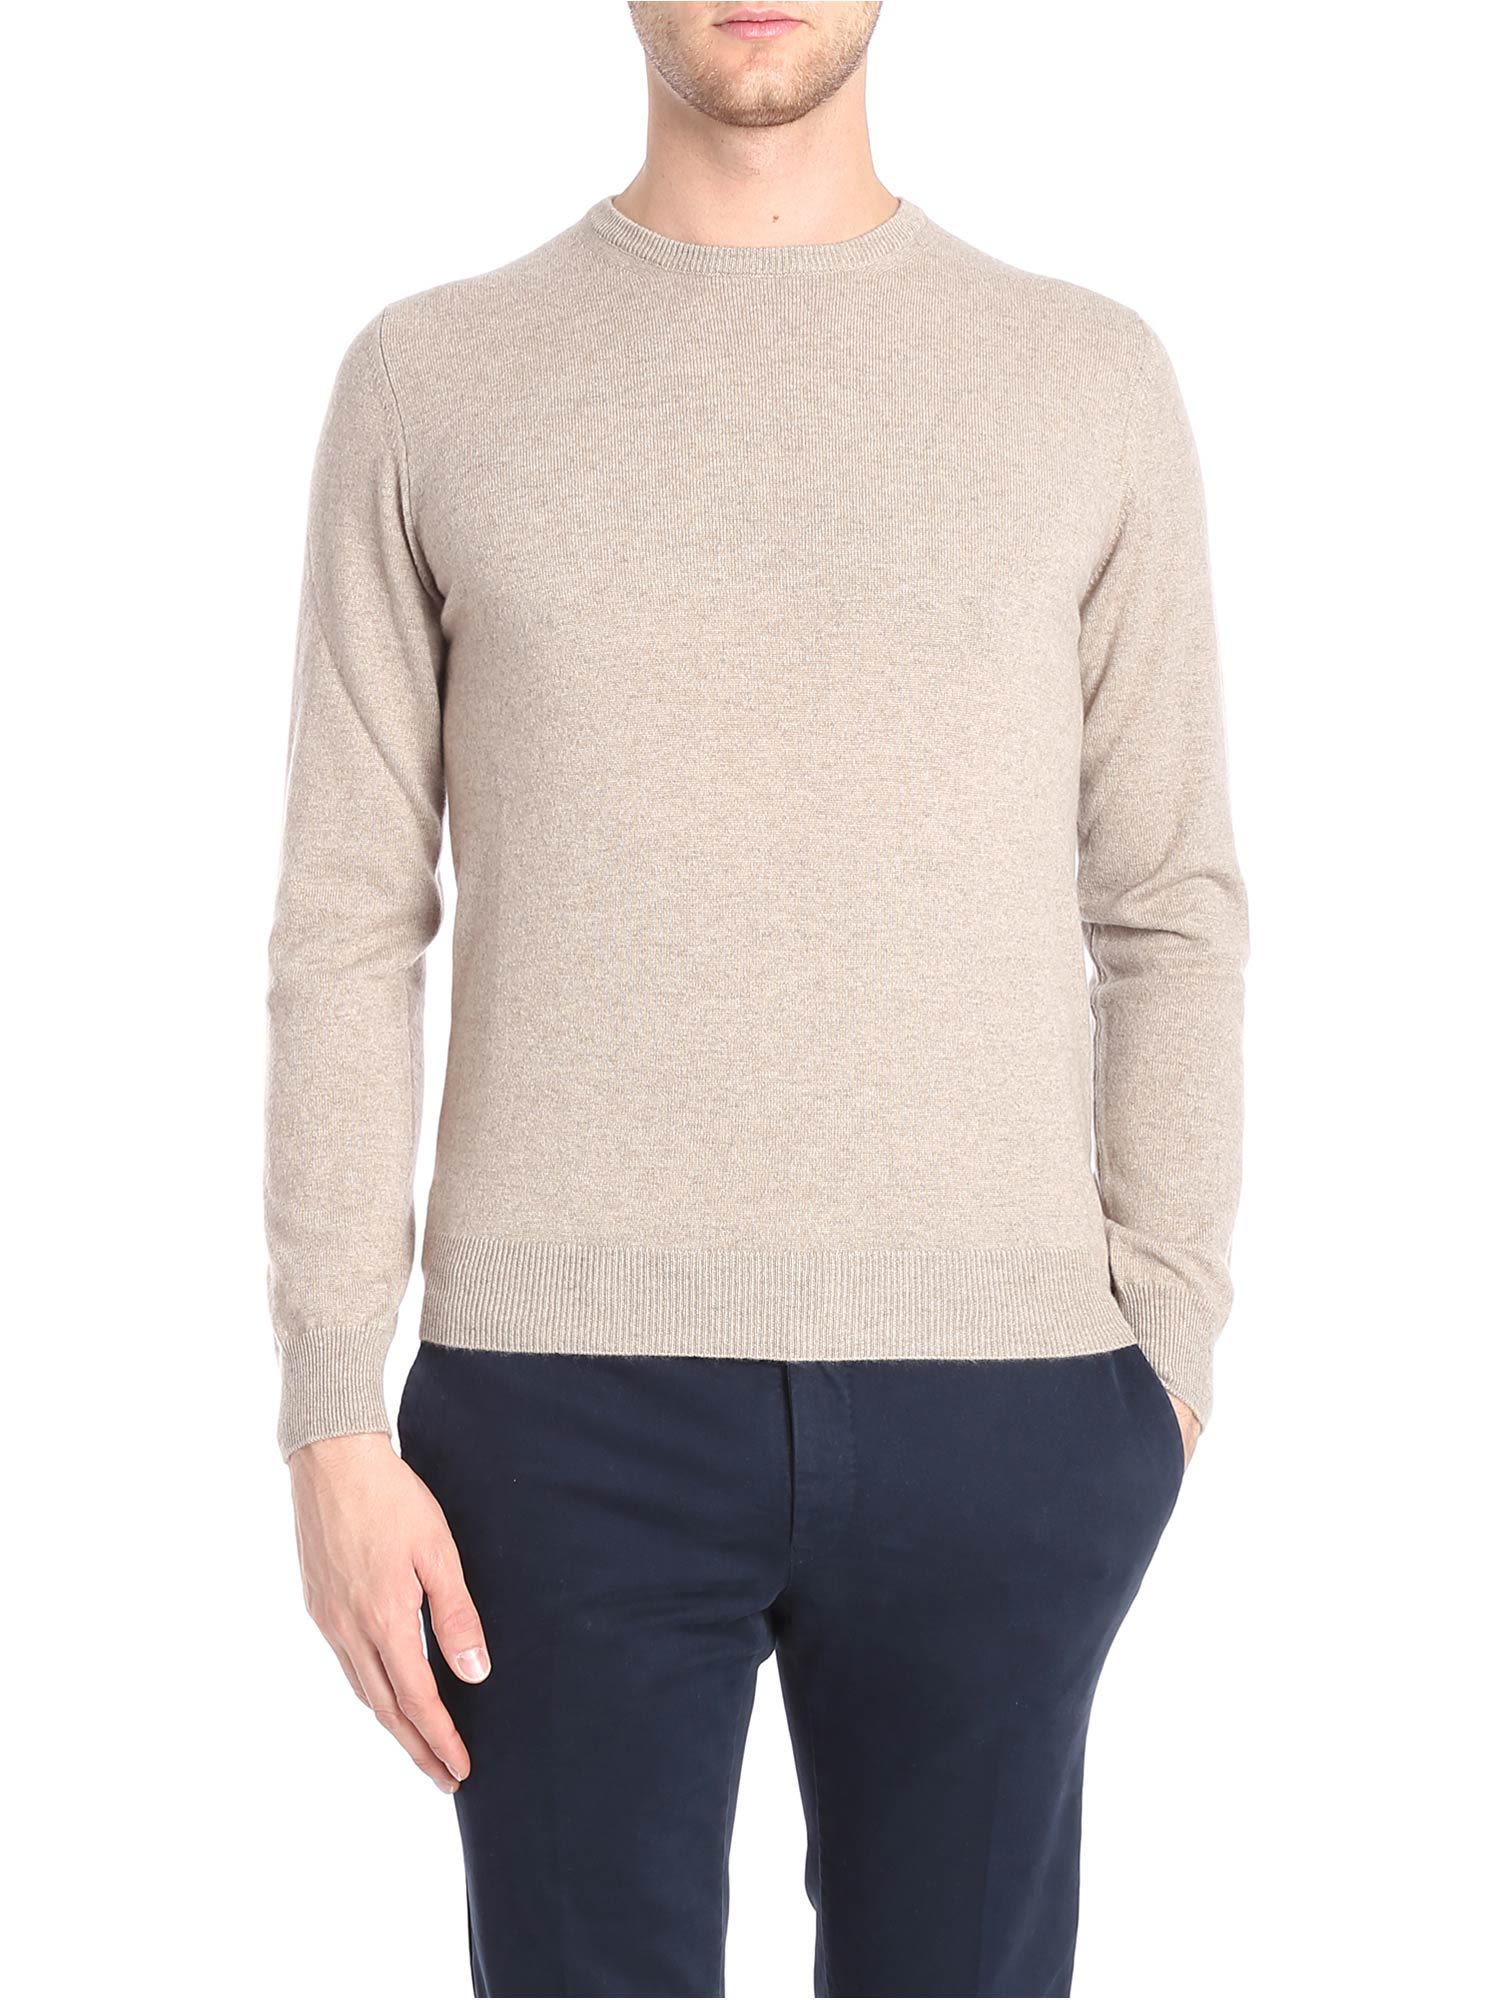 LUIGI BORRELLI Knitted Sweater in Beige